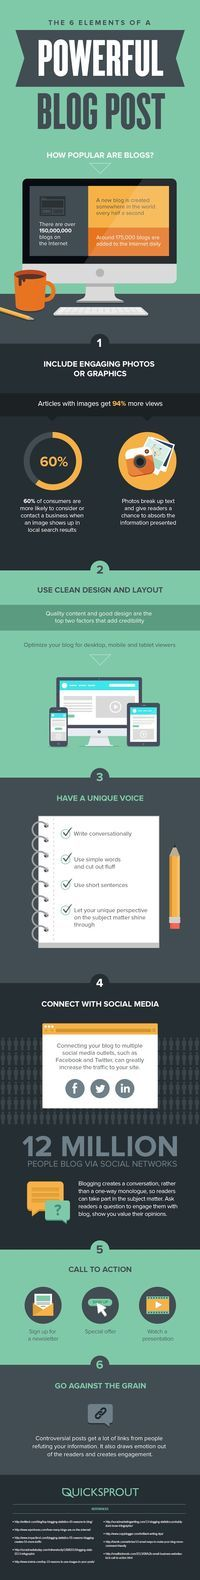 The 6 Elements of a Powerful Blog Post - #blogging #contentmarketing #infographic